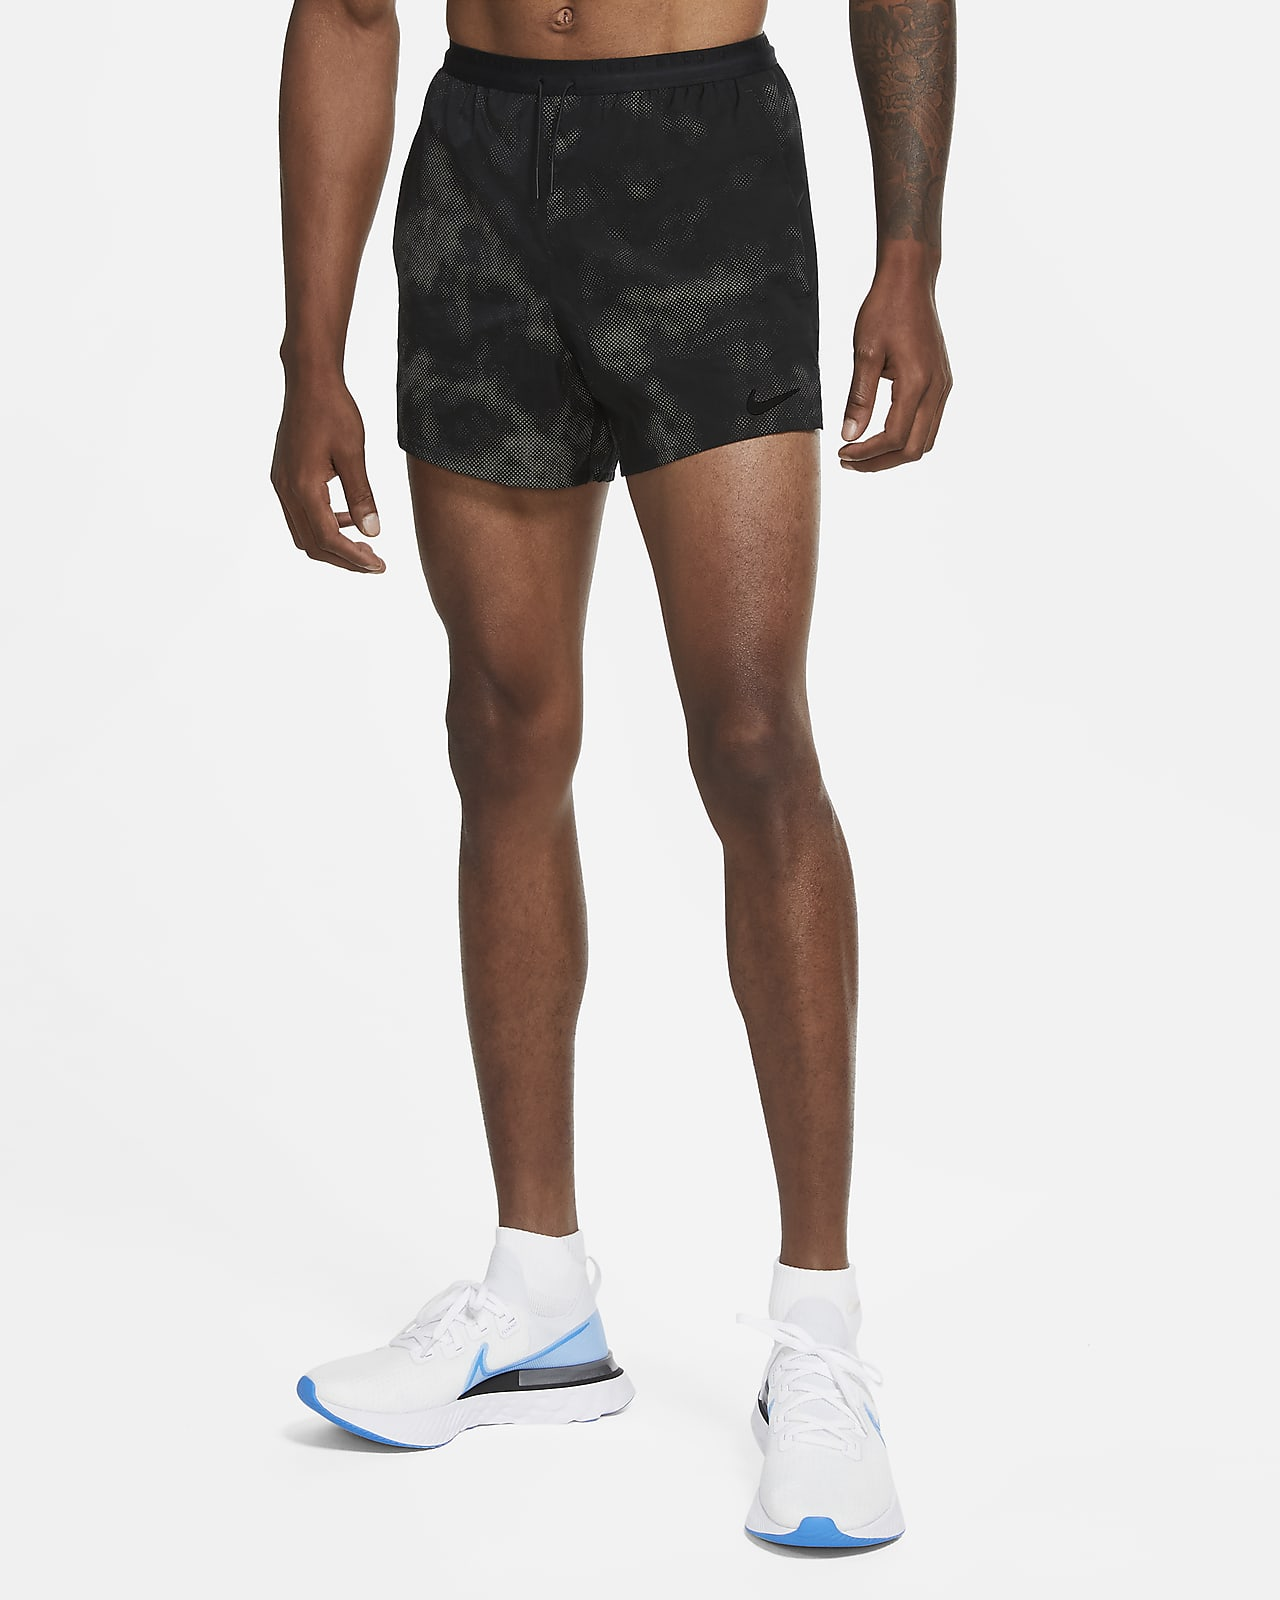 Nike Run Division Flash Men's Running Shorts